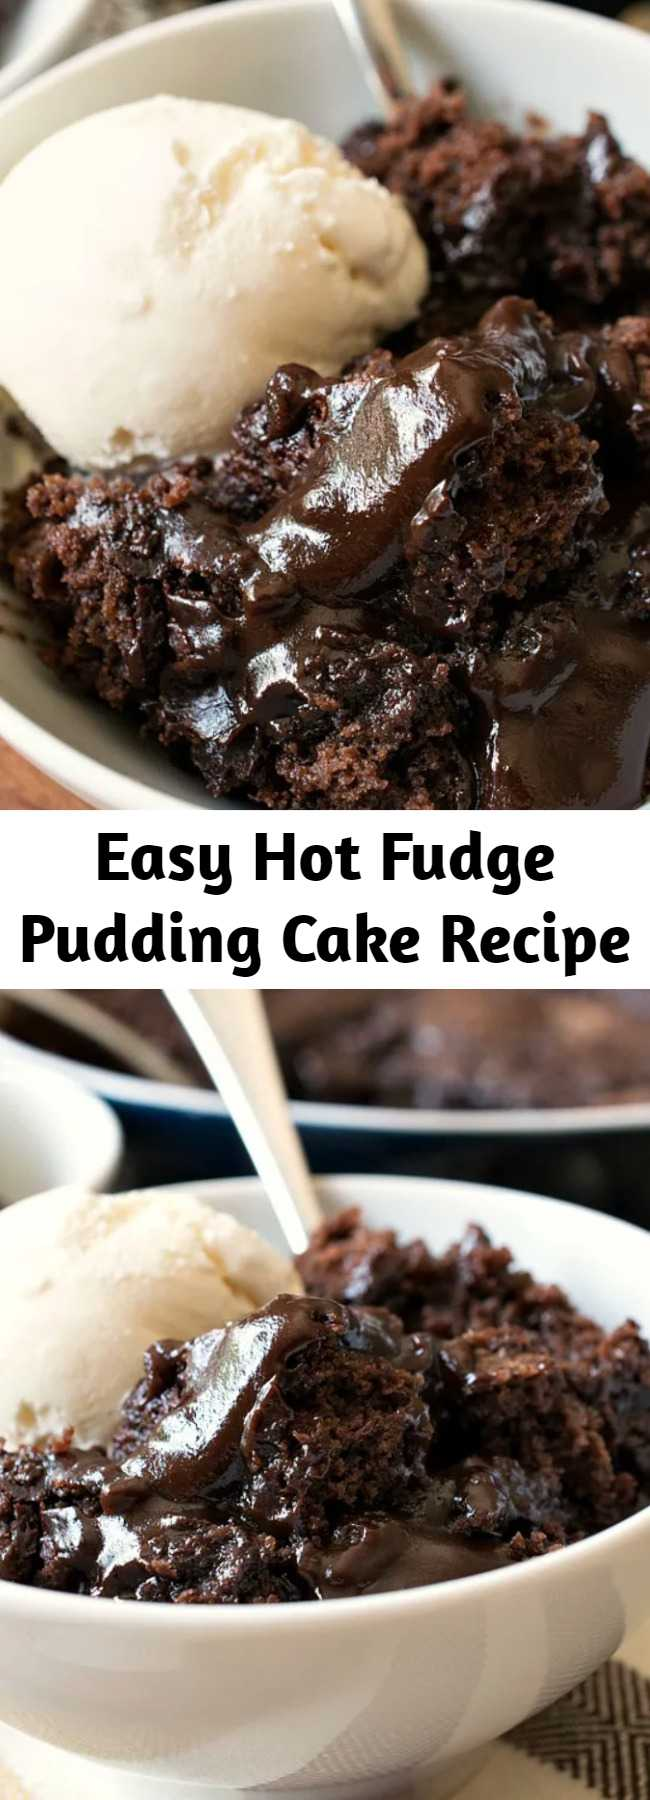 Easy Hot Fudge Pudding Cake Recipe - Hot Fudge Pudding Cake is a delicious, easy vintage recipe that everyone absolutely loves! A fudge sauce forms under a rich chocolate cake as it bakes in the oven. #puddingcake #chocolatedessert